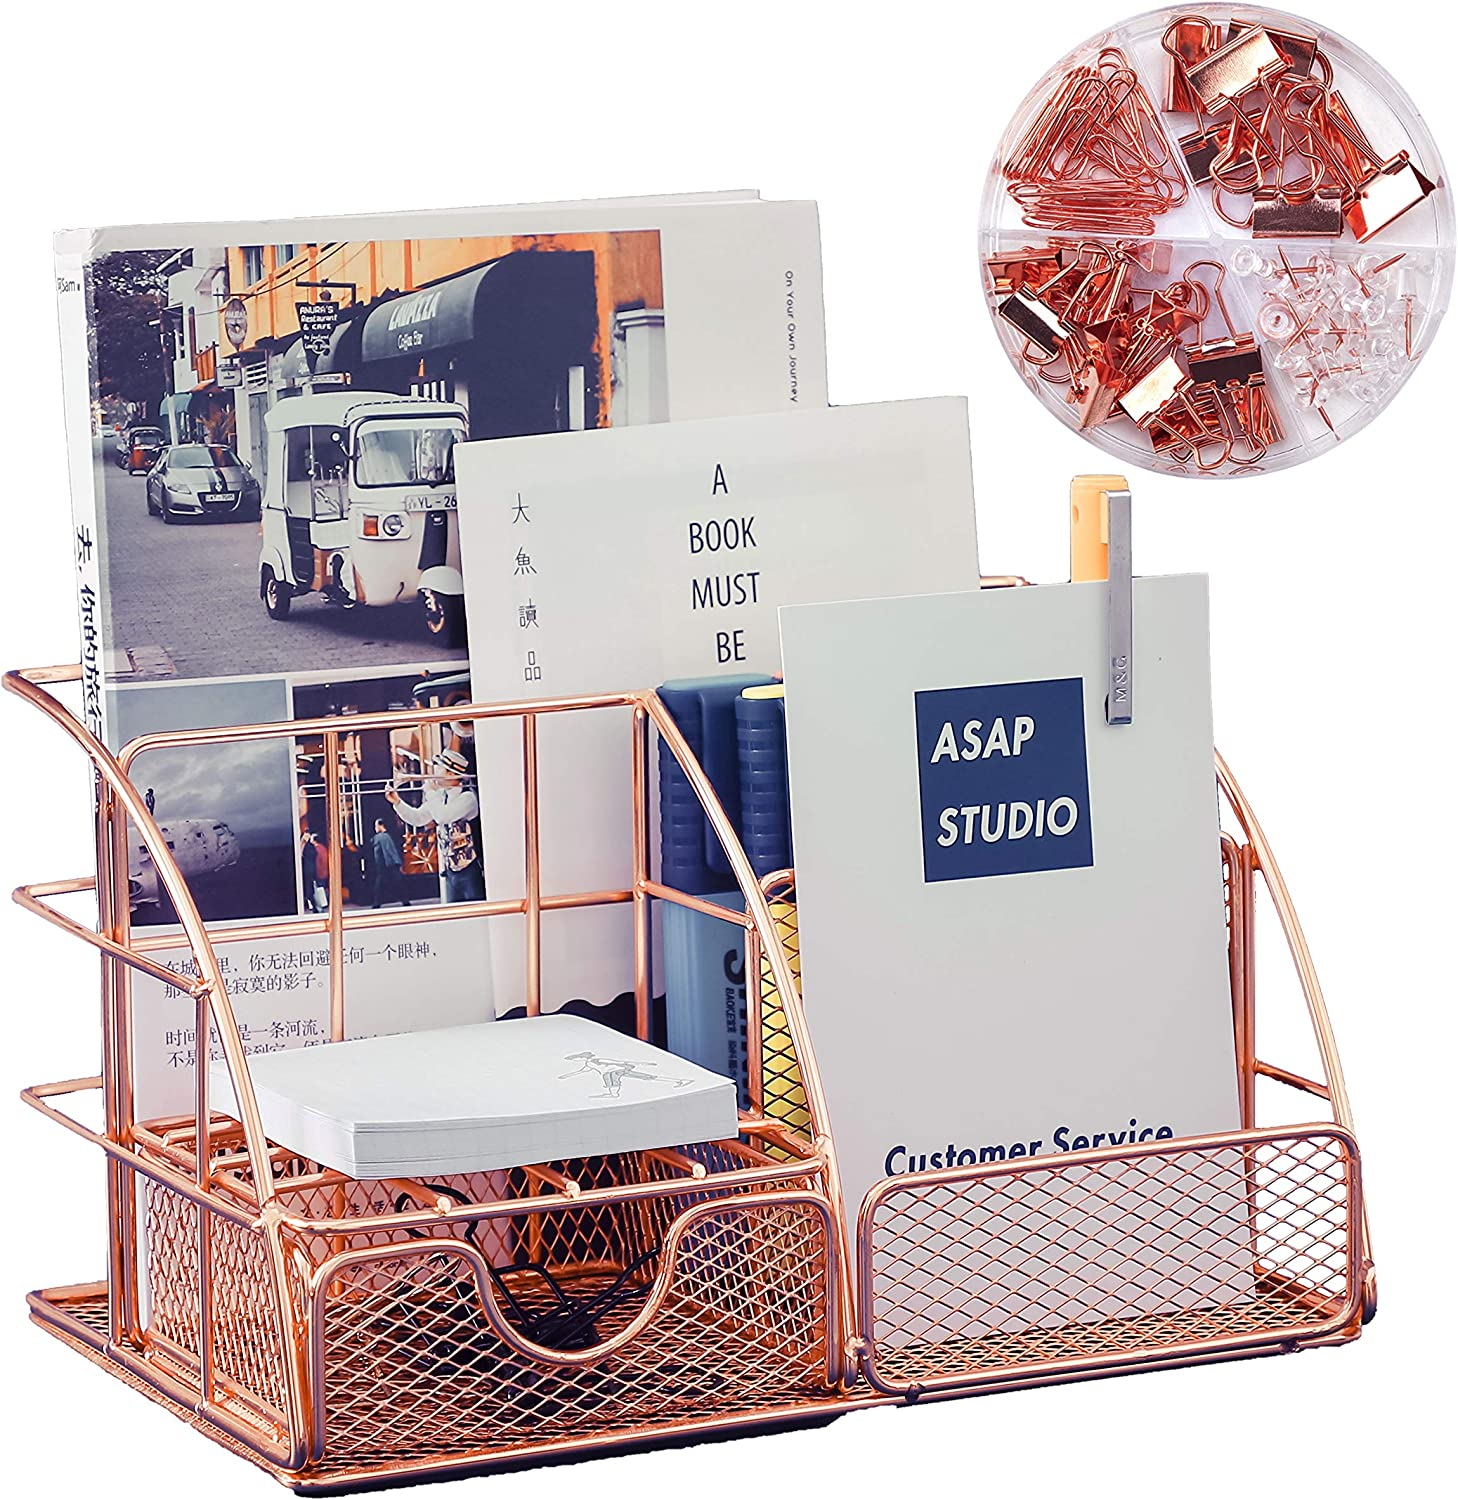 Rose Gold Desk Organizer for Women, Features 5 Compartments + 1 Mini Sliding Drawer,with Binder Clips and Paper Clips Office Supplies Set for Office School Home